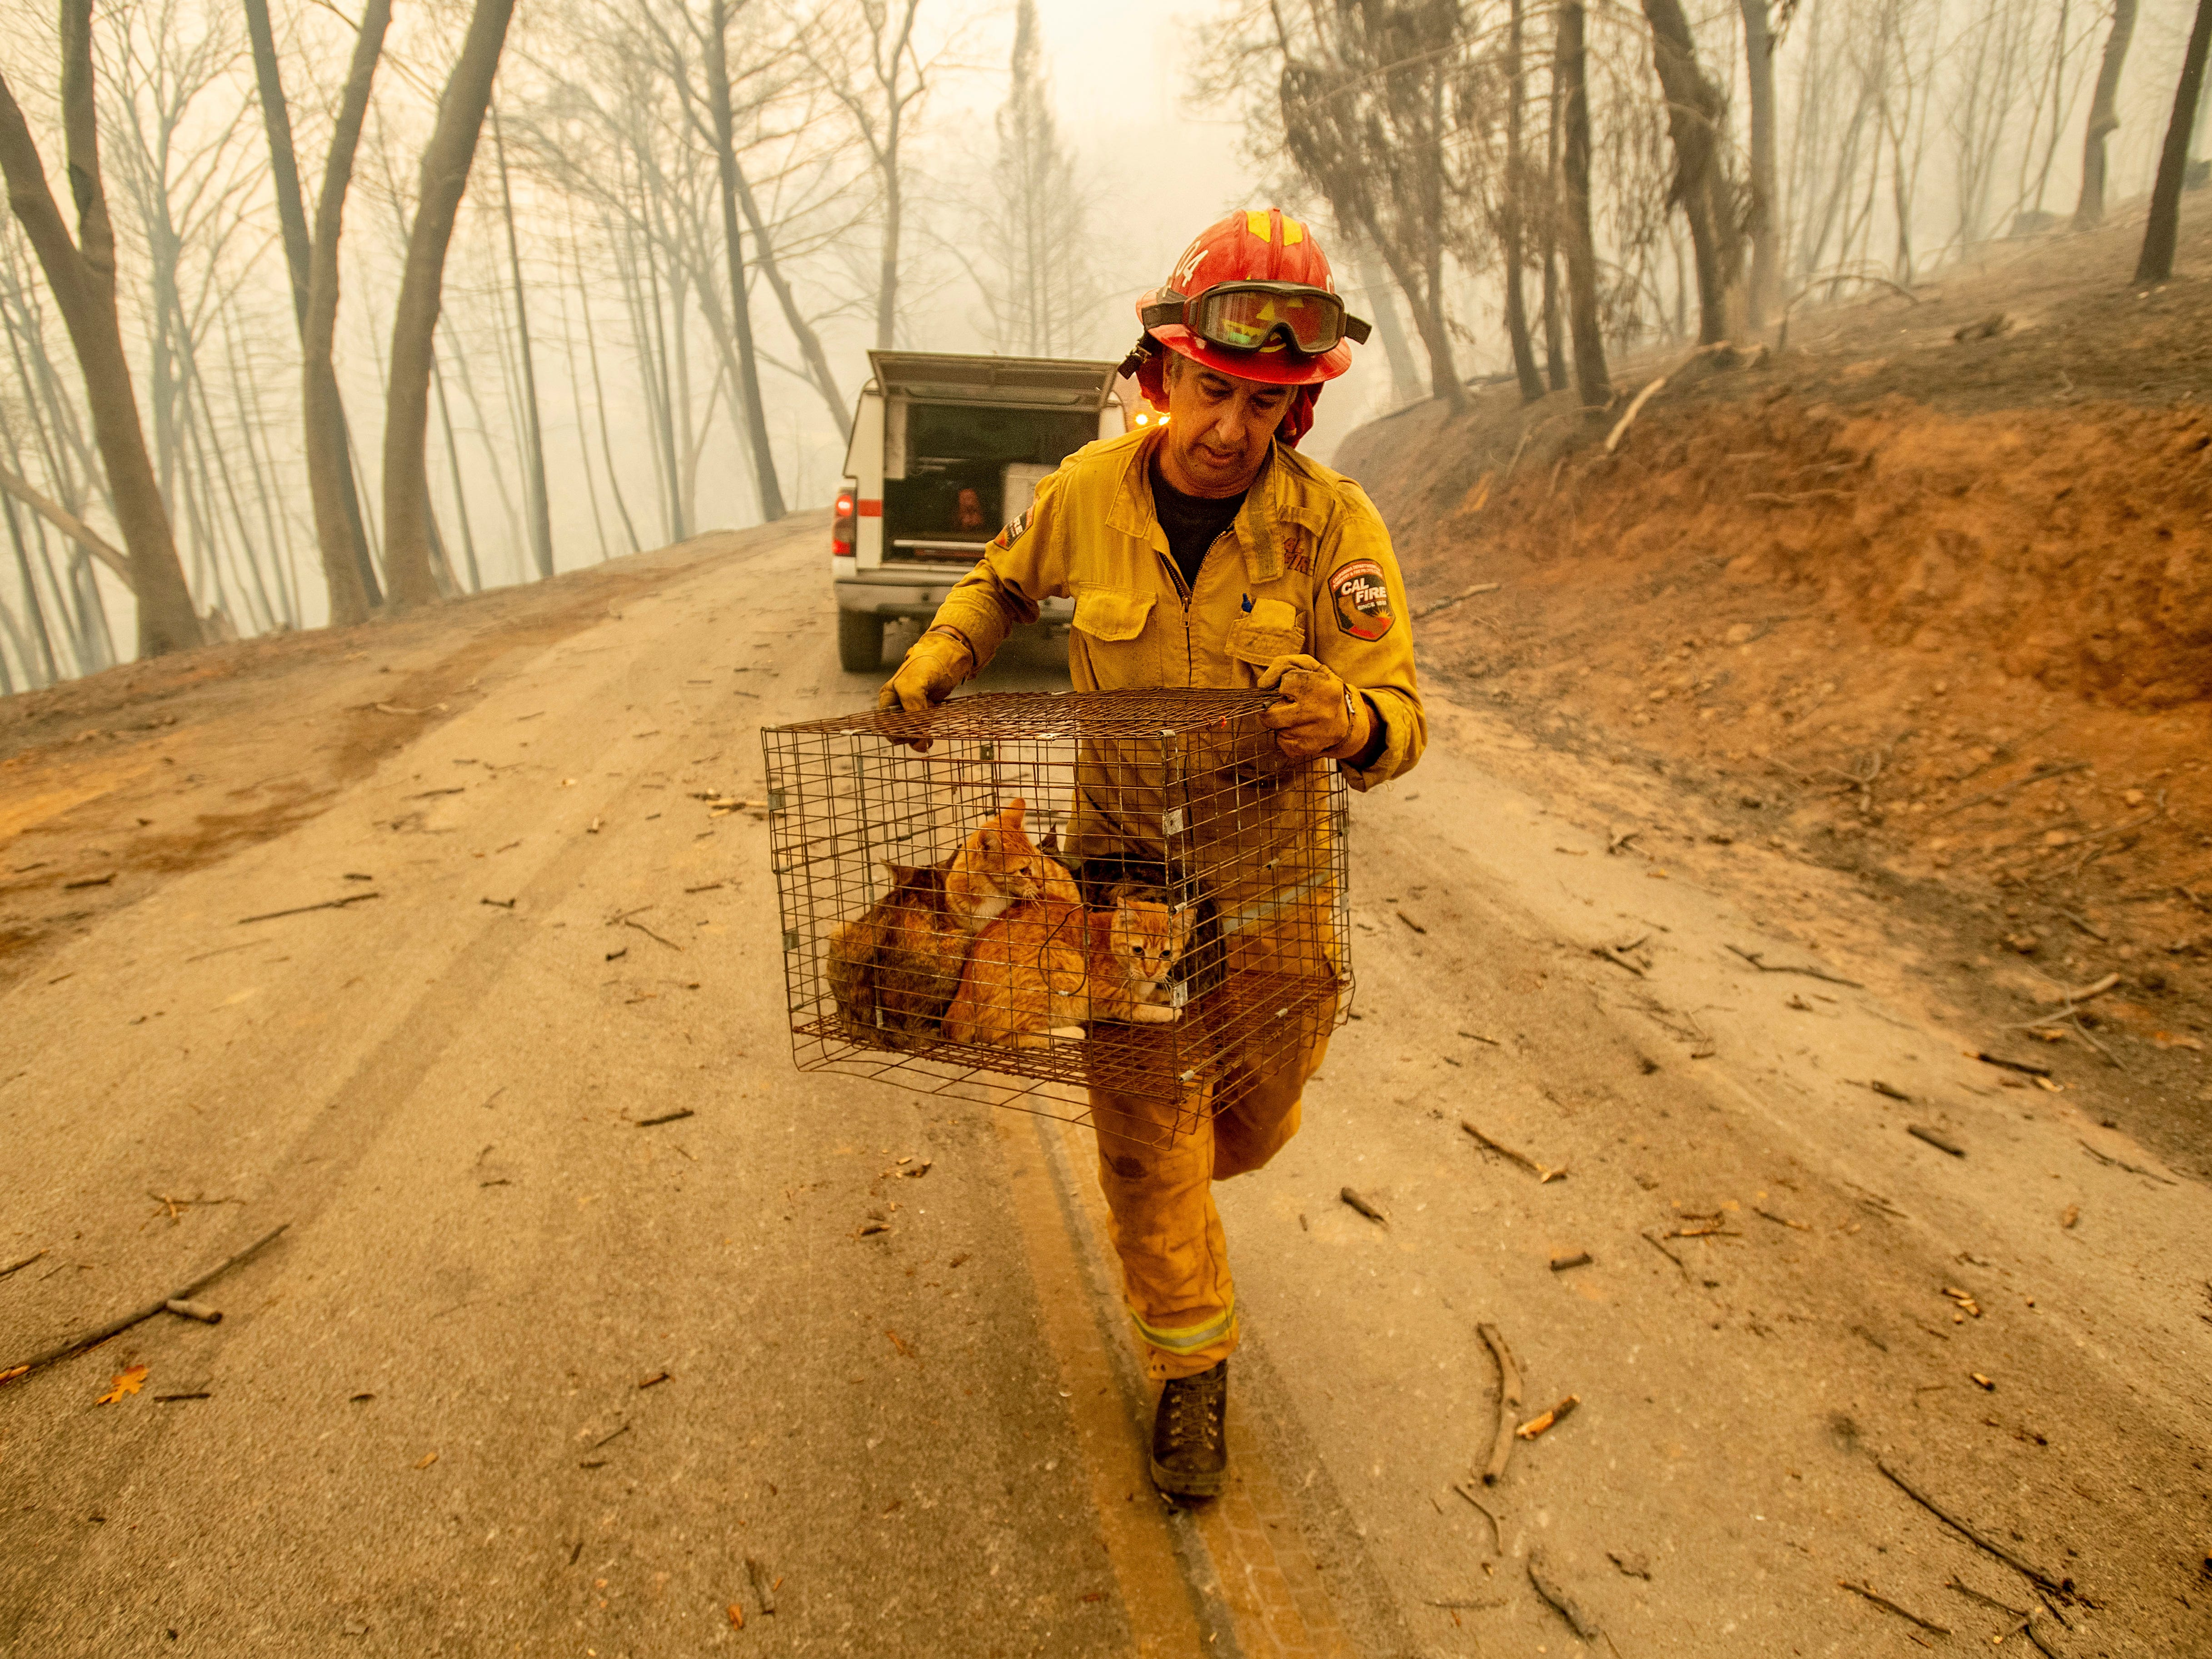 Capt. Steve Millosovich carries a cage of cats while battling the Camp Fire in Big Bend, Calif., on Friday, Nov. 9, 2018. Millosovich said the cage fell from the bed of a pick-up truck as an evacuee drove to safety.